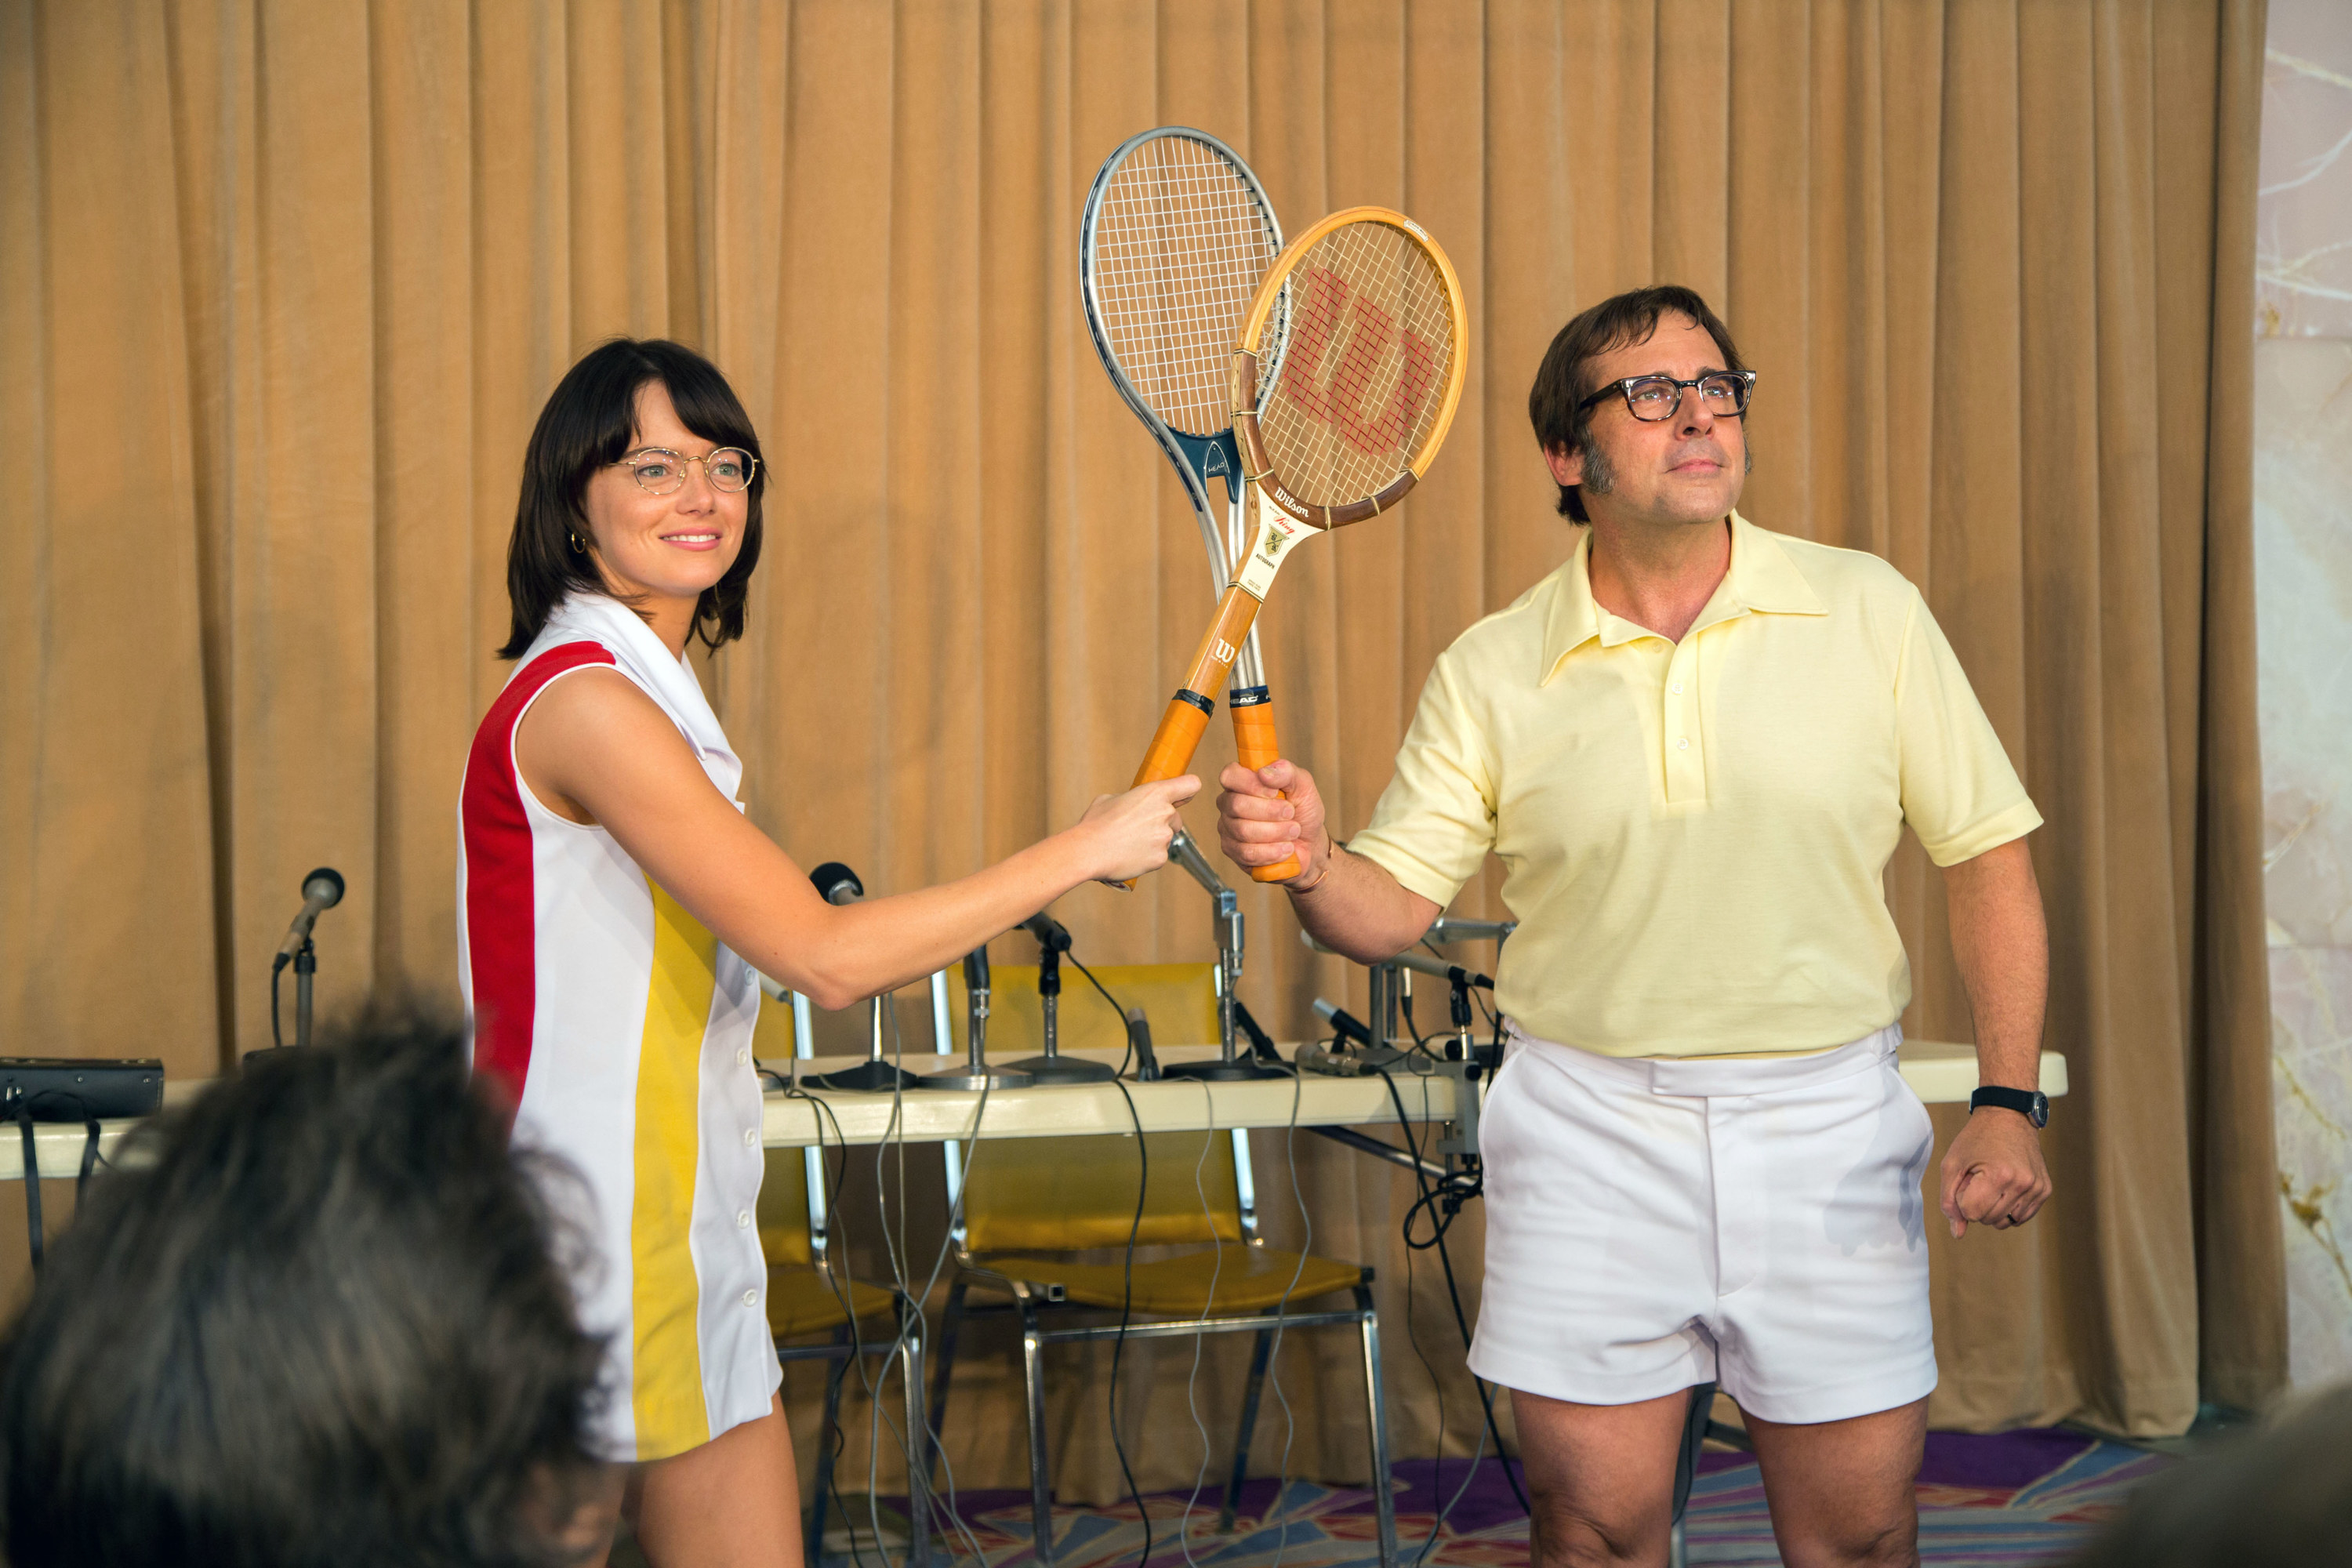 Billie Jean king andBobby Riggs posing with their tennis rackets touching